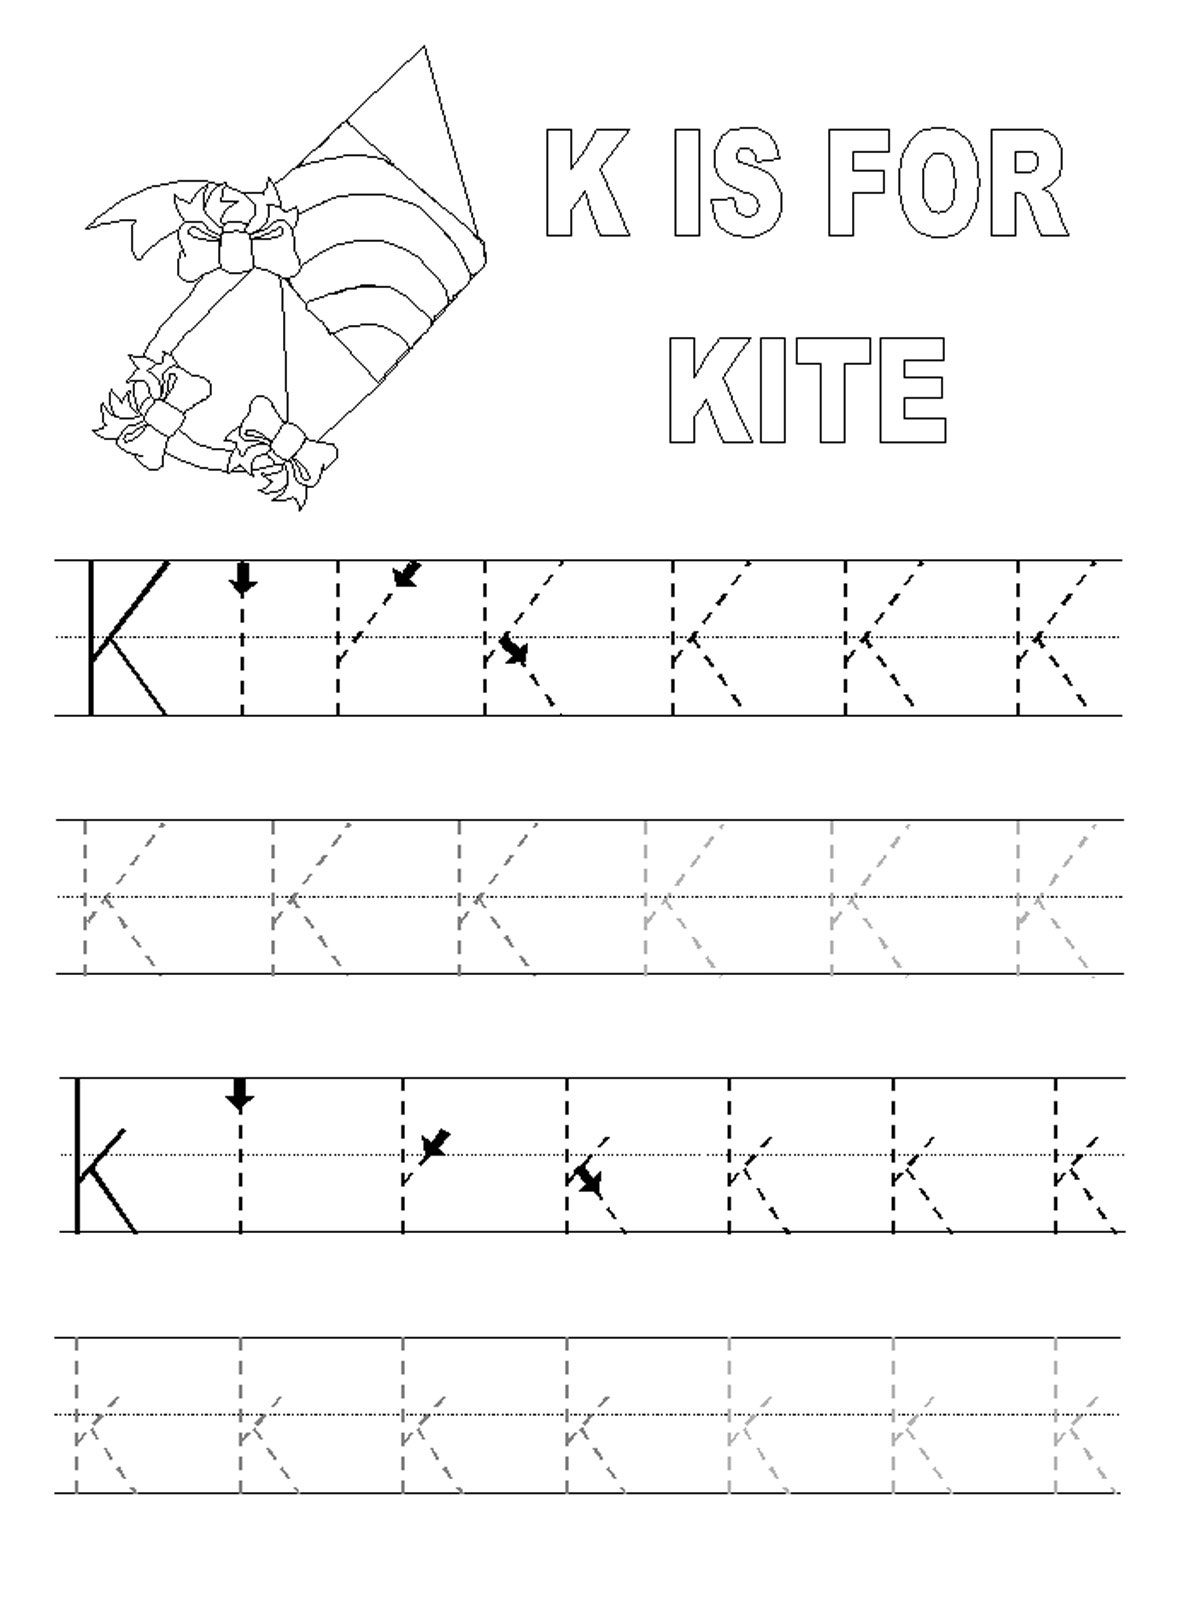 trace the letters kite